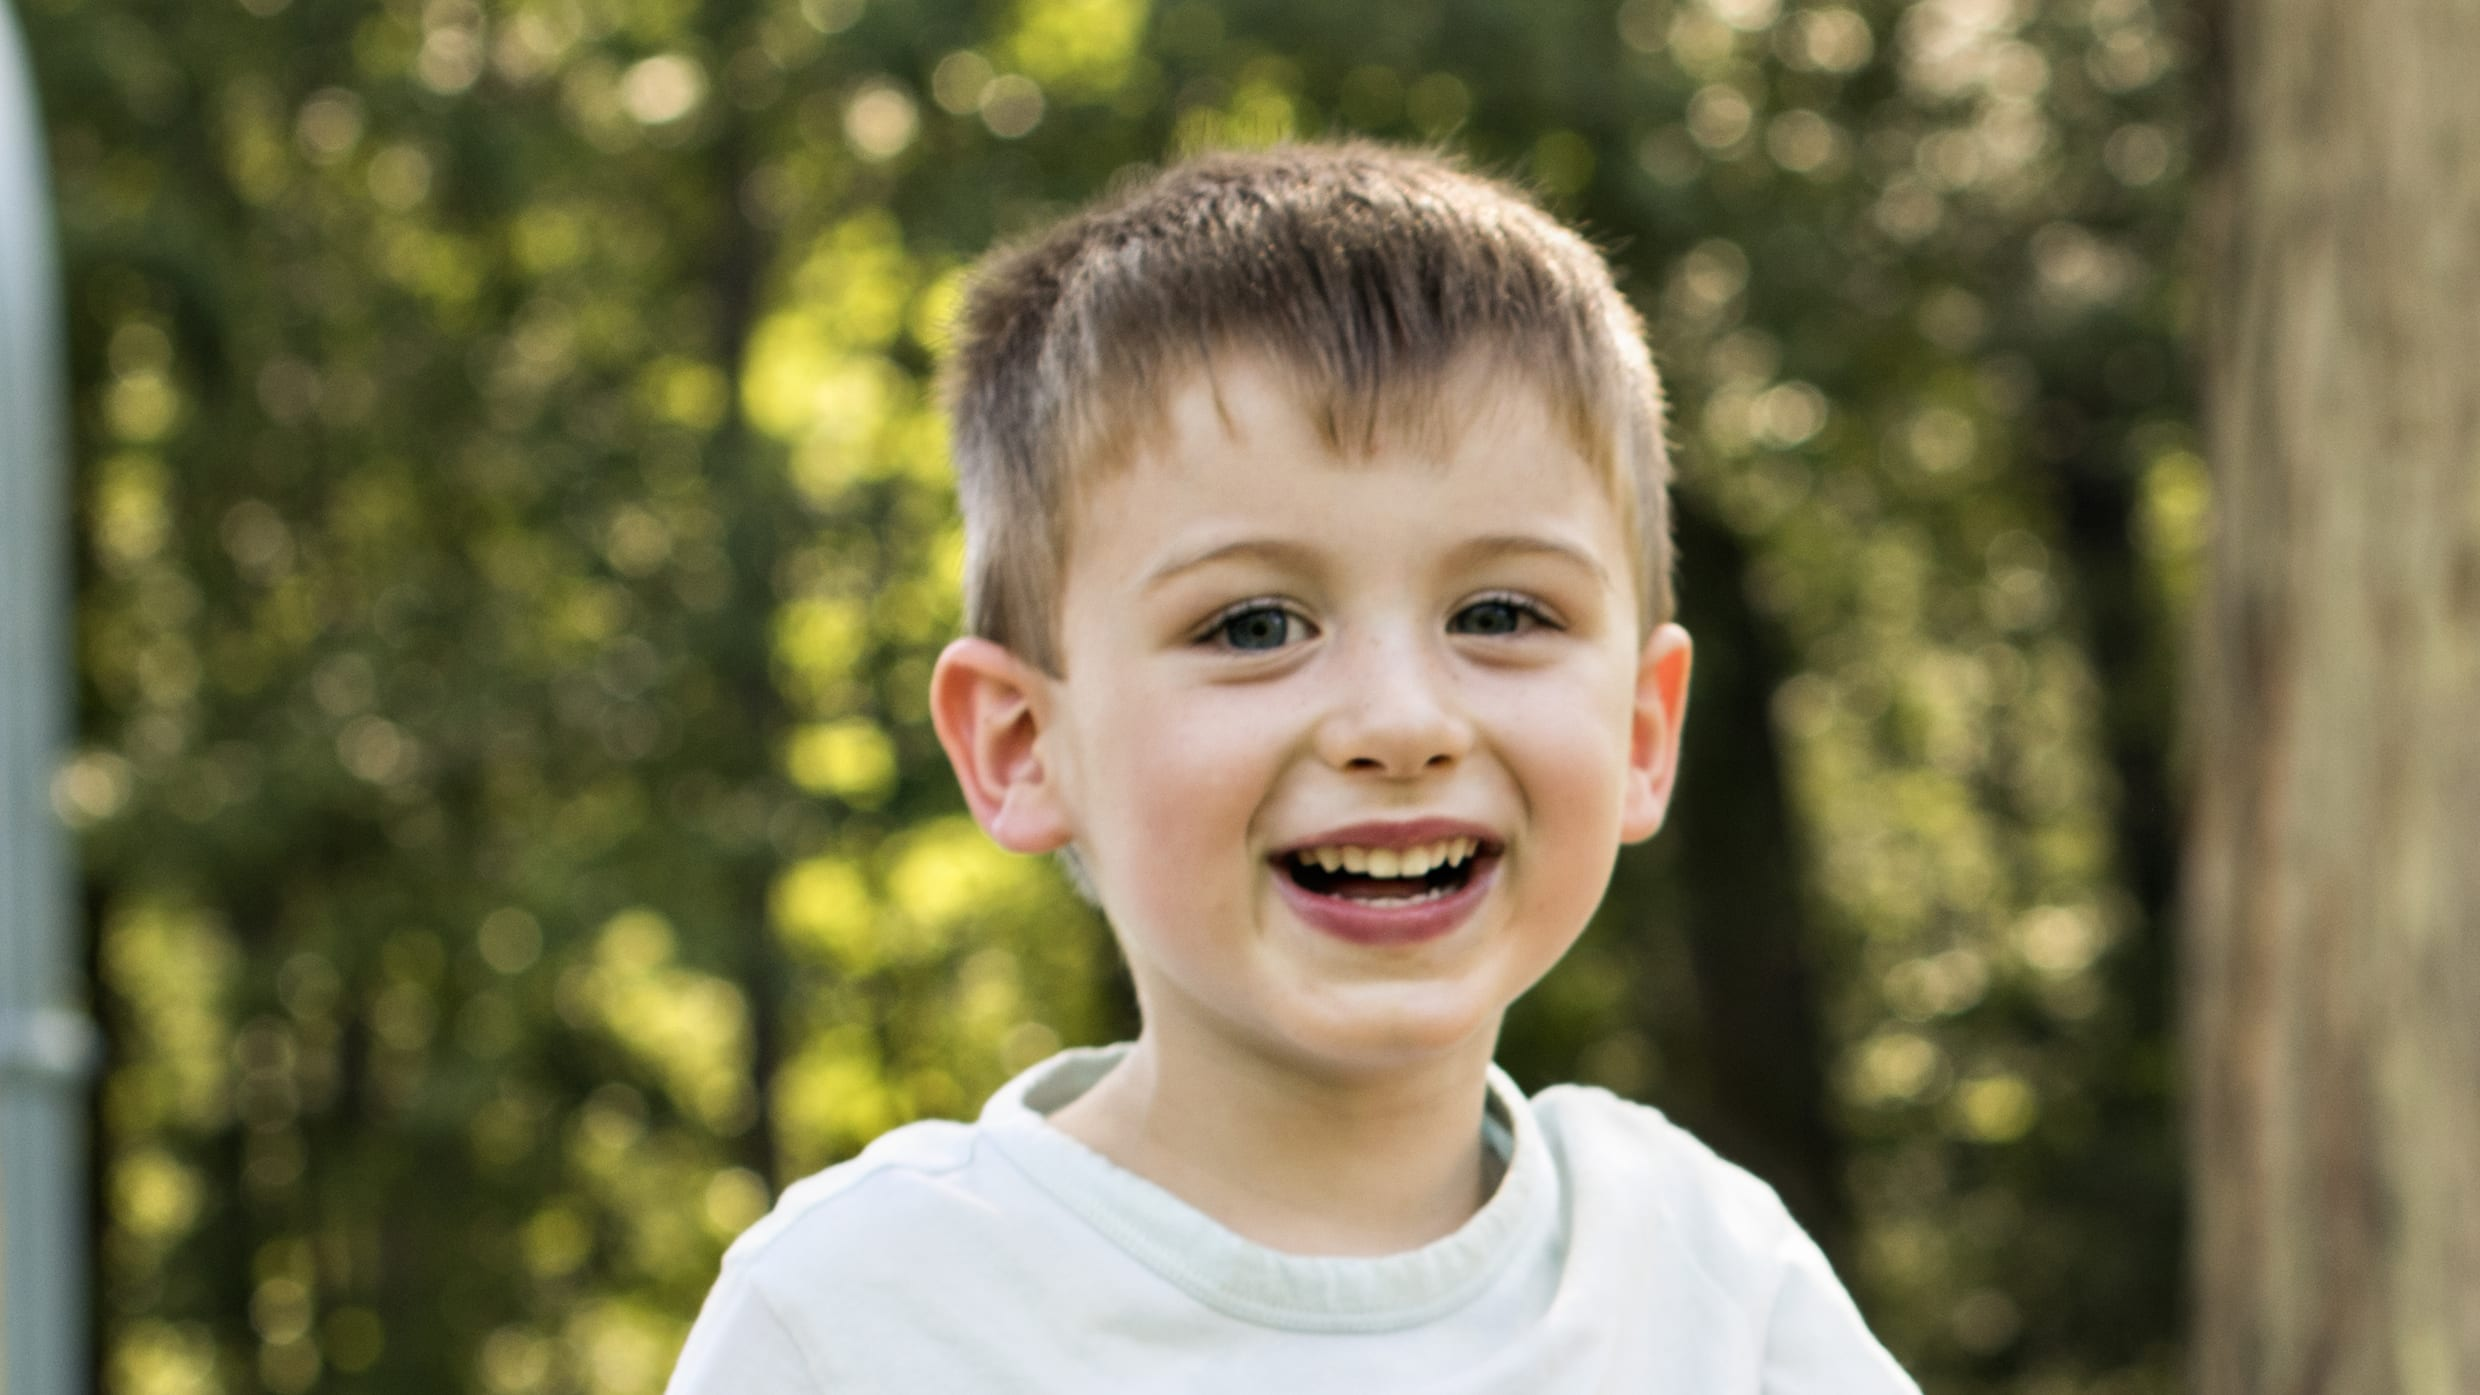 This is a picture of Zachary Bailey, a 4-year-old boy who has trouble sleeping.